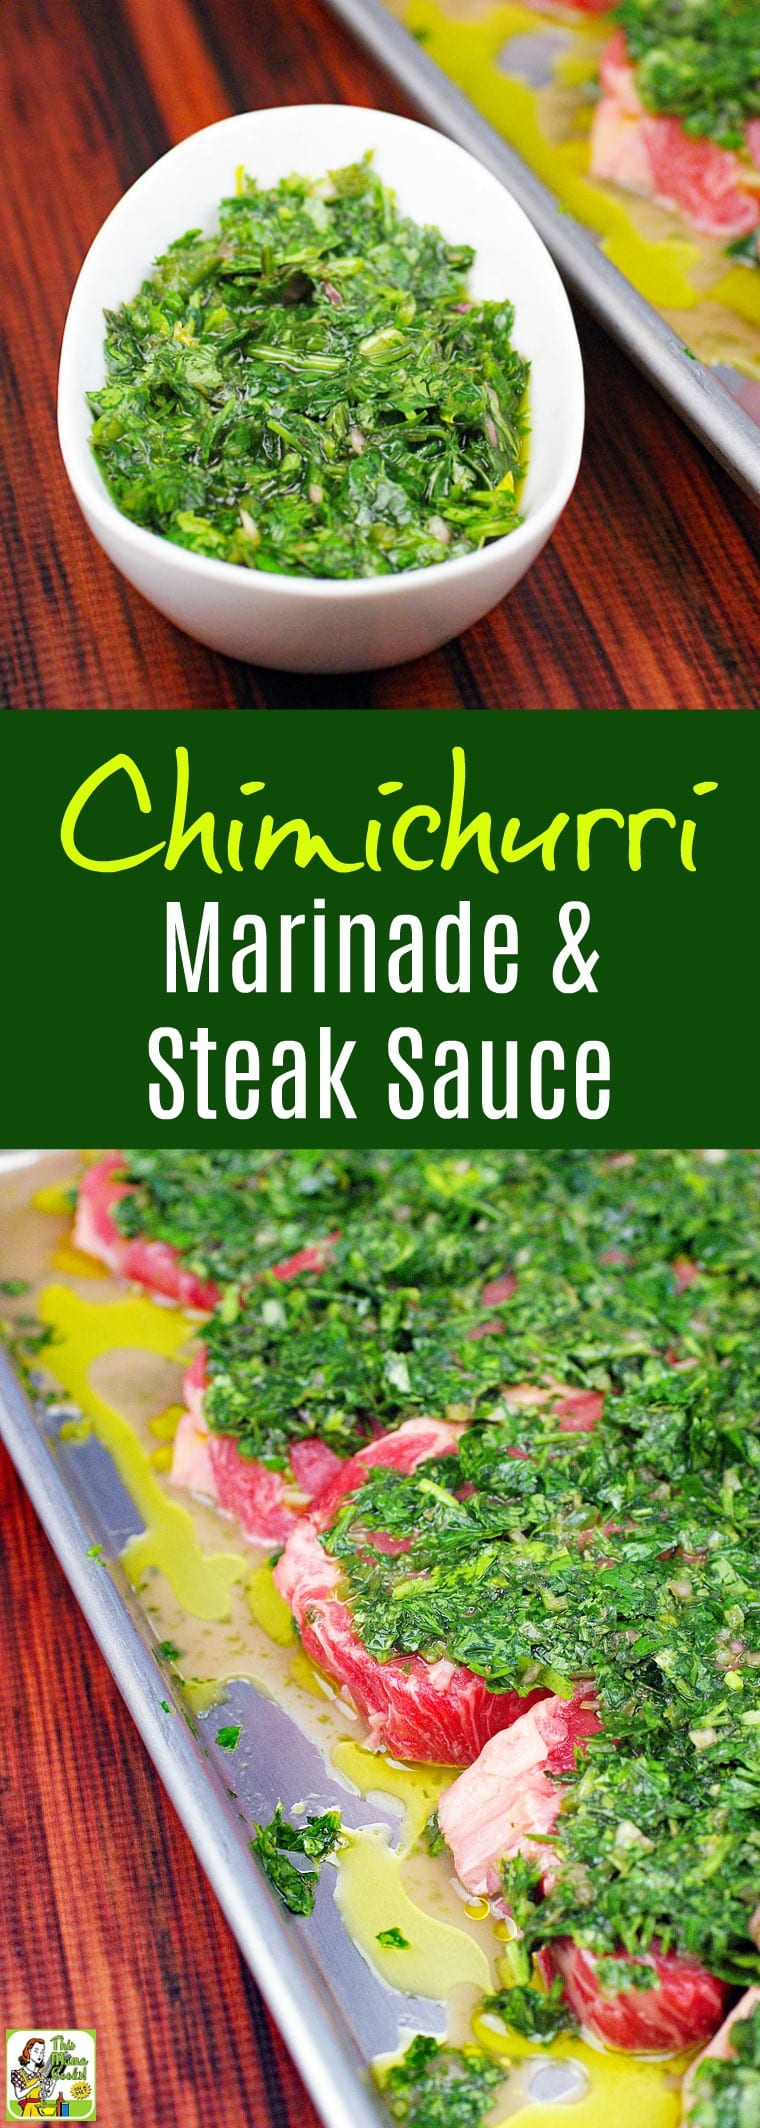 Making the Best Chimichurri Recipe is easier than you think. Click to get this Chimichurri Marinade & Steak Sauce Recipe. Homemade chimichurri sauce is perfect for marinating and serving with grilled skirt steak or flank steak.